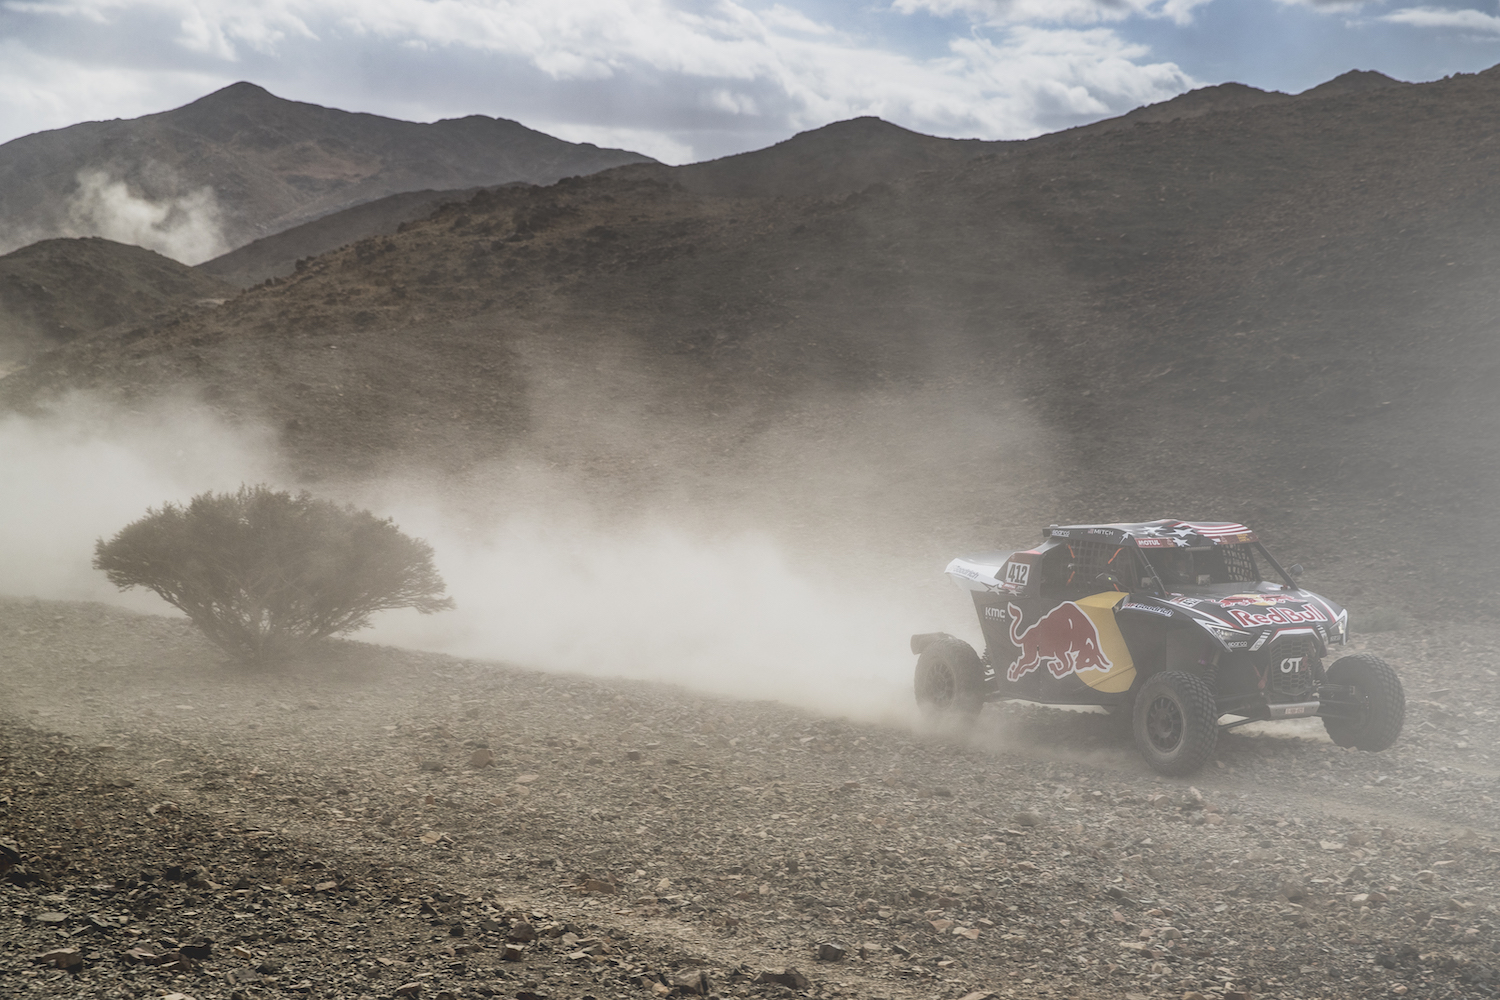 Mitchell Guthrie (USA) and Ola Floene (NOR) of SSV Red-Bull Off-Road Team USA races during stage 4 of Rally Dakar 2020 from Neom to Al-Ula, Saudi Arabia on January 08, 2020.